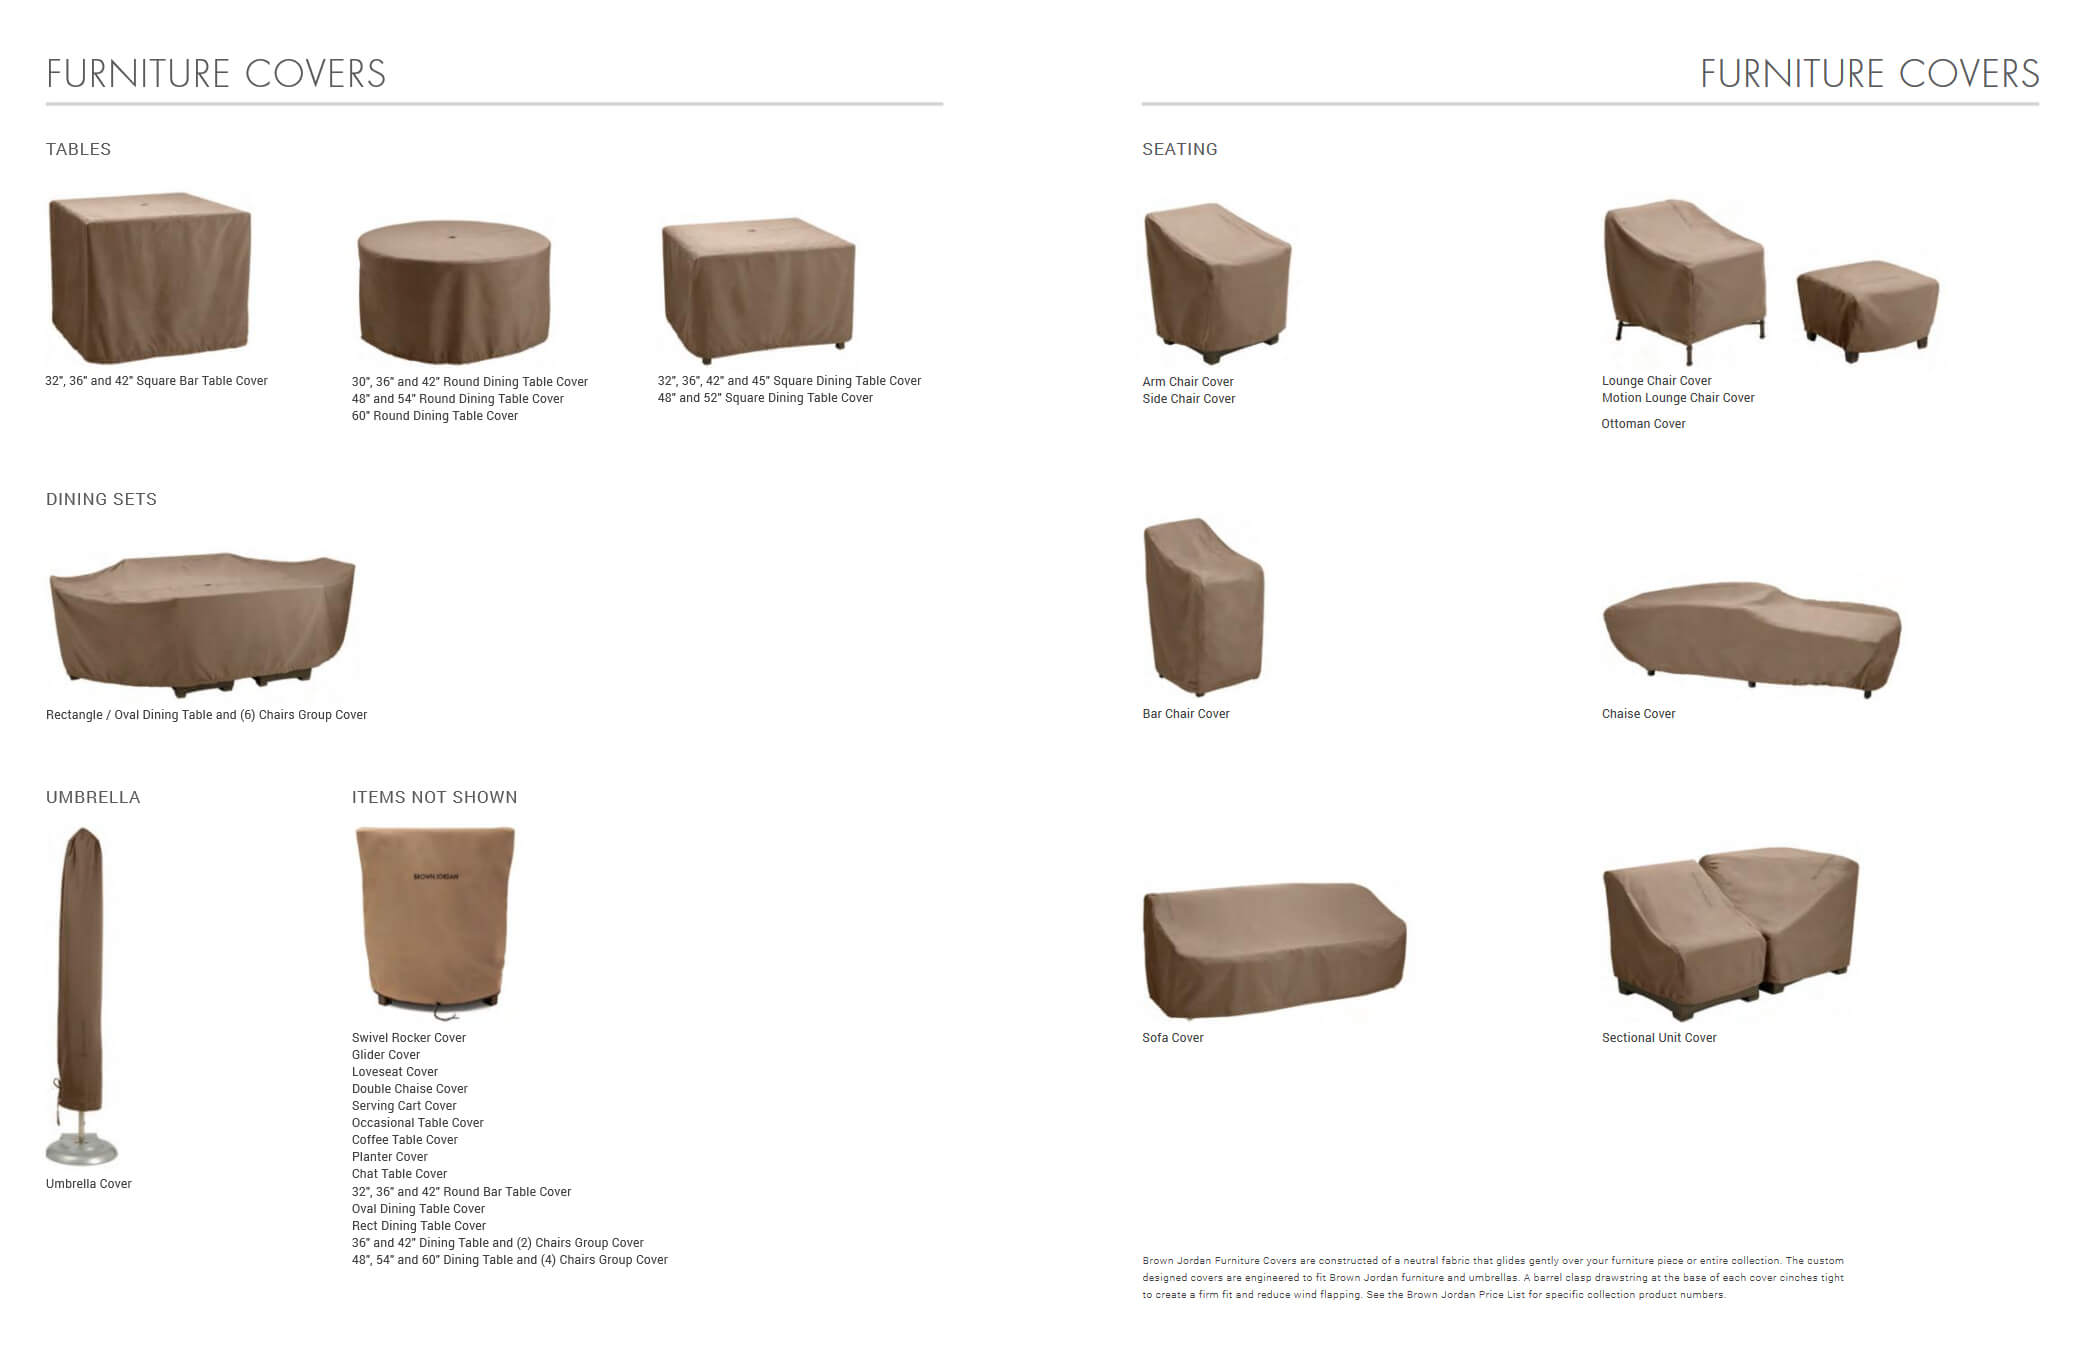 Superb Furniture Covers Brown Jordan Furniture Covers Into The Gmtry Best Dining Table And Chair Ideas Images Gmtryco